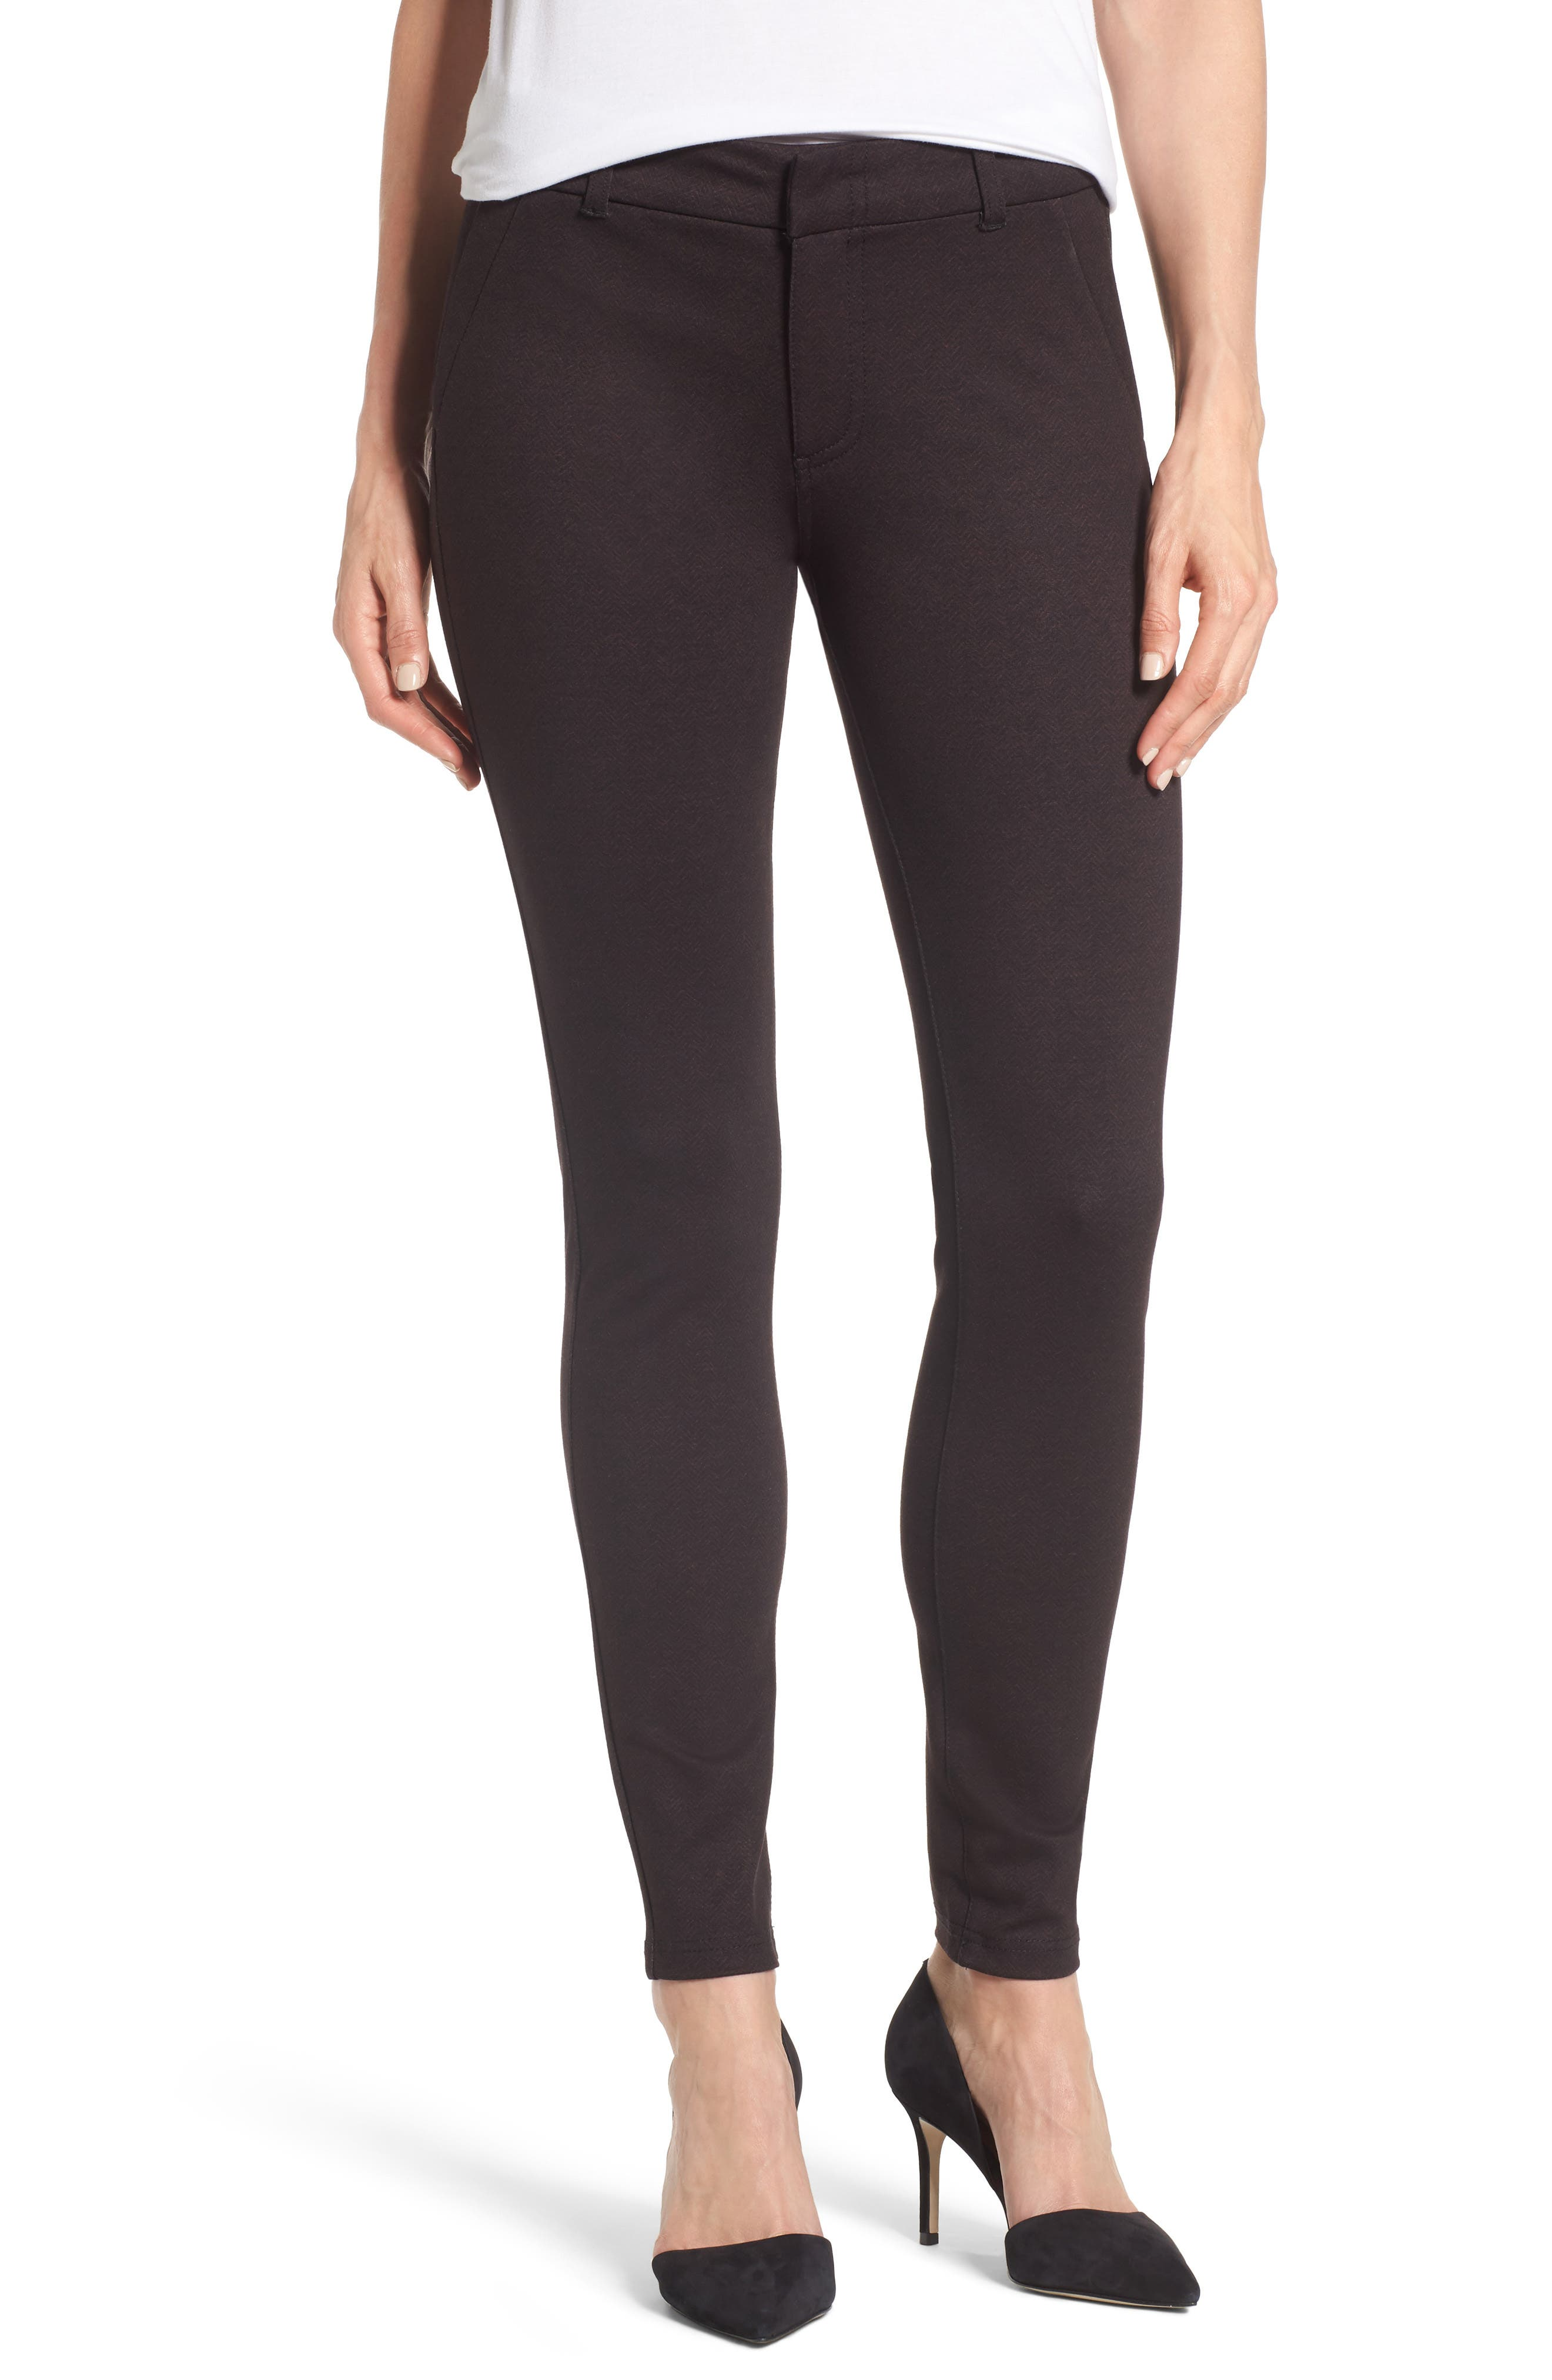 Alternate Image 1 Selected - KUT from the Kloth Mia Print Ankle Skinny Pants